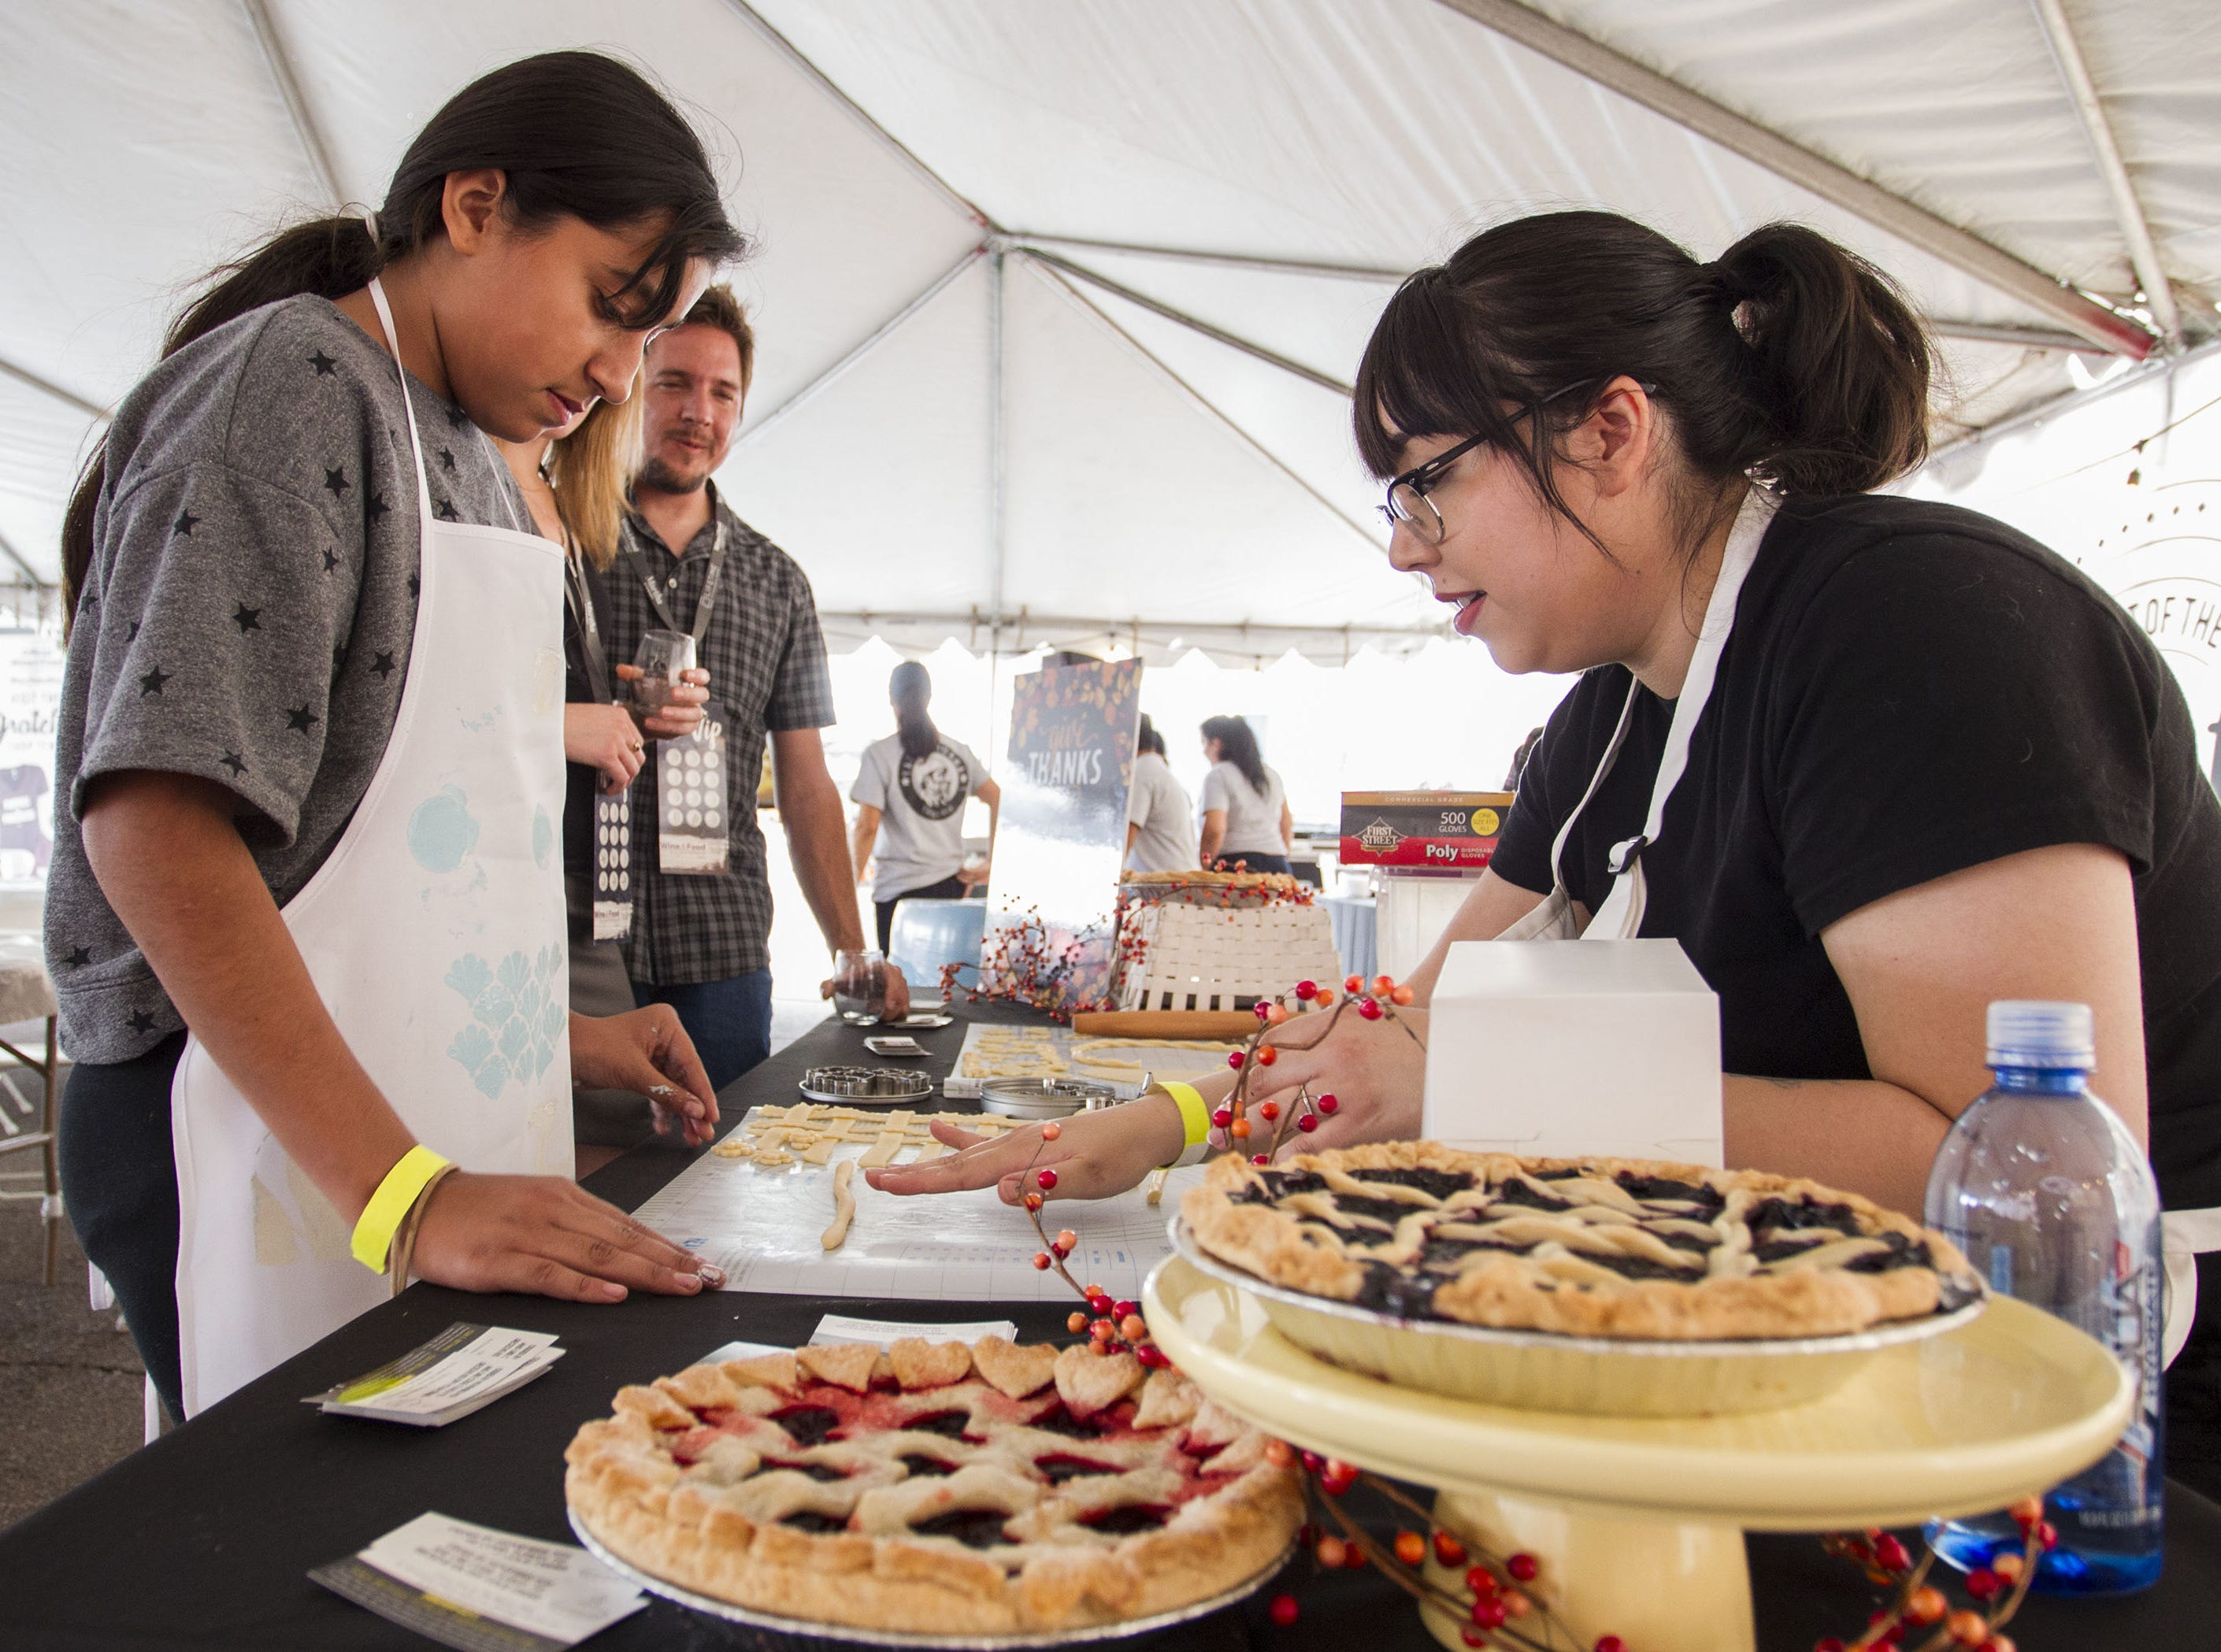 Cooking enthusiasts learn how to roll dough during the azcentral Wine & Food Experience at WestWorld of Scottsdale, Sunday, Nov. 4, 2018.